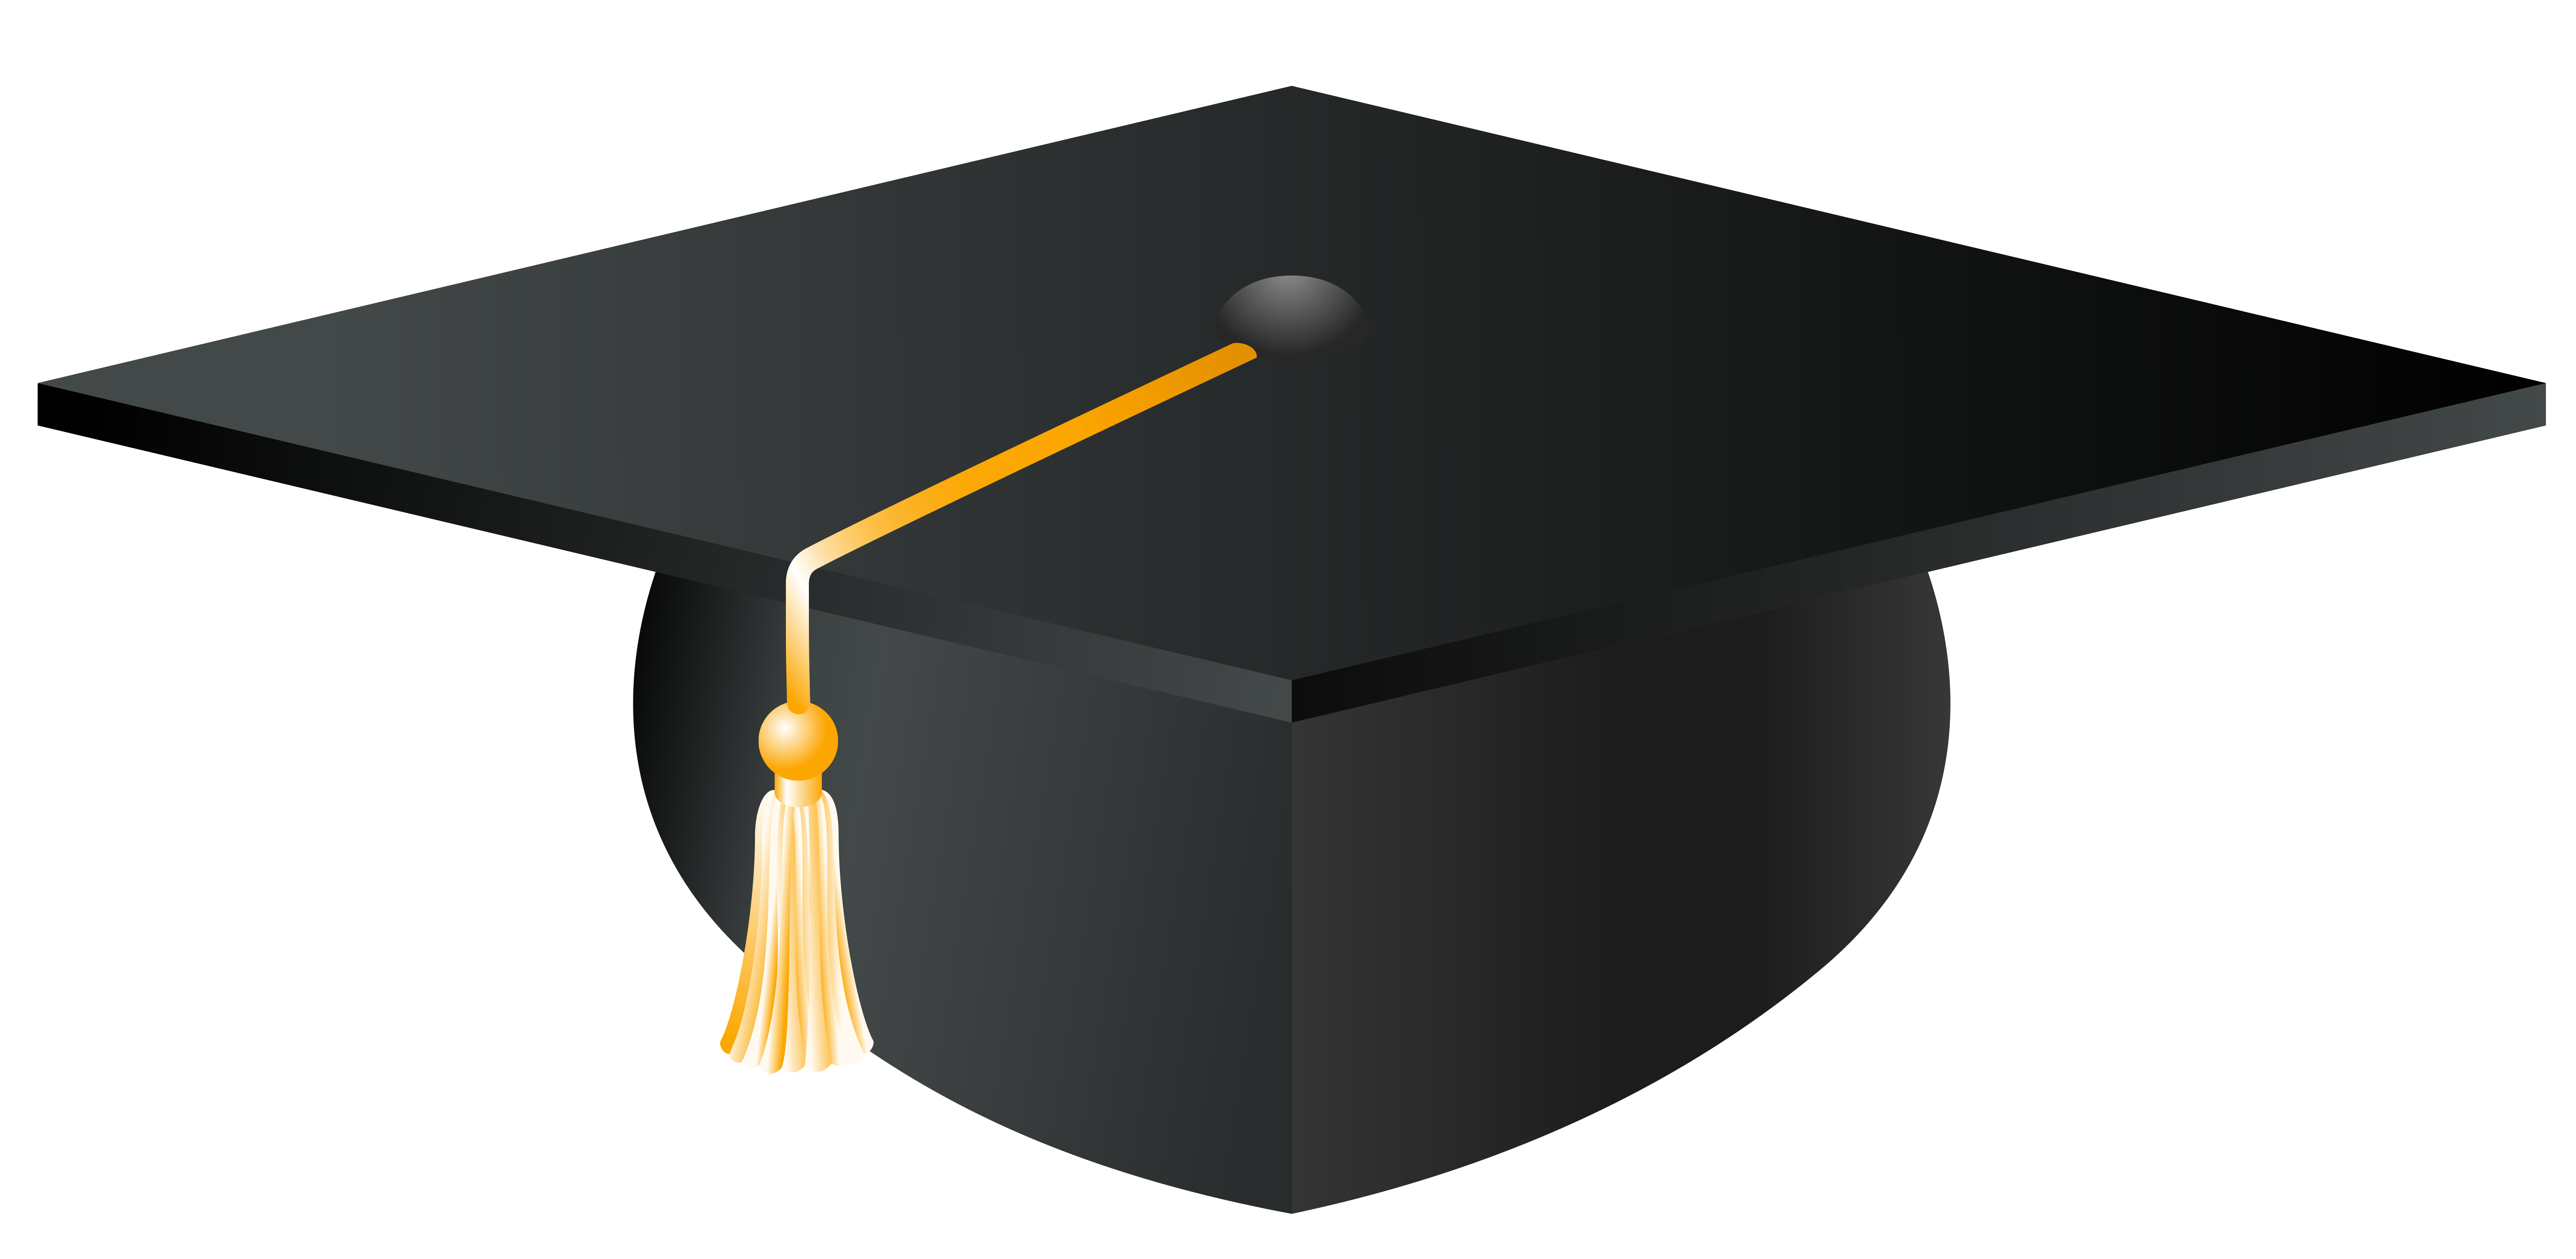 Free clipart images of high school graduation 2018 clip freeuse download Black And White Vector For Graduation Cap Clipart | Free download ... clip freeuse download